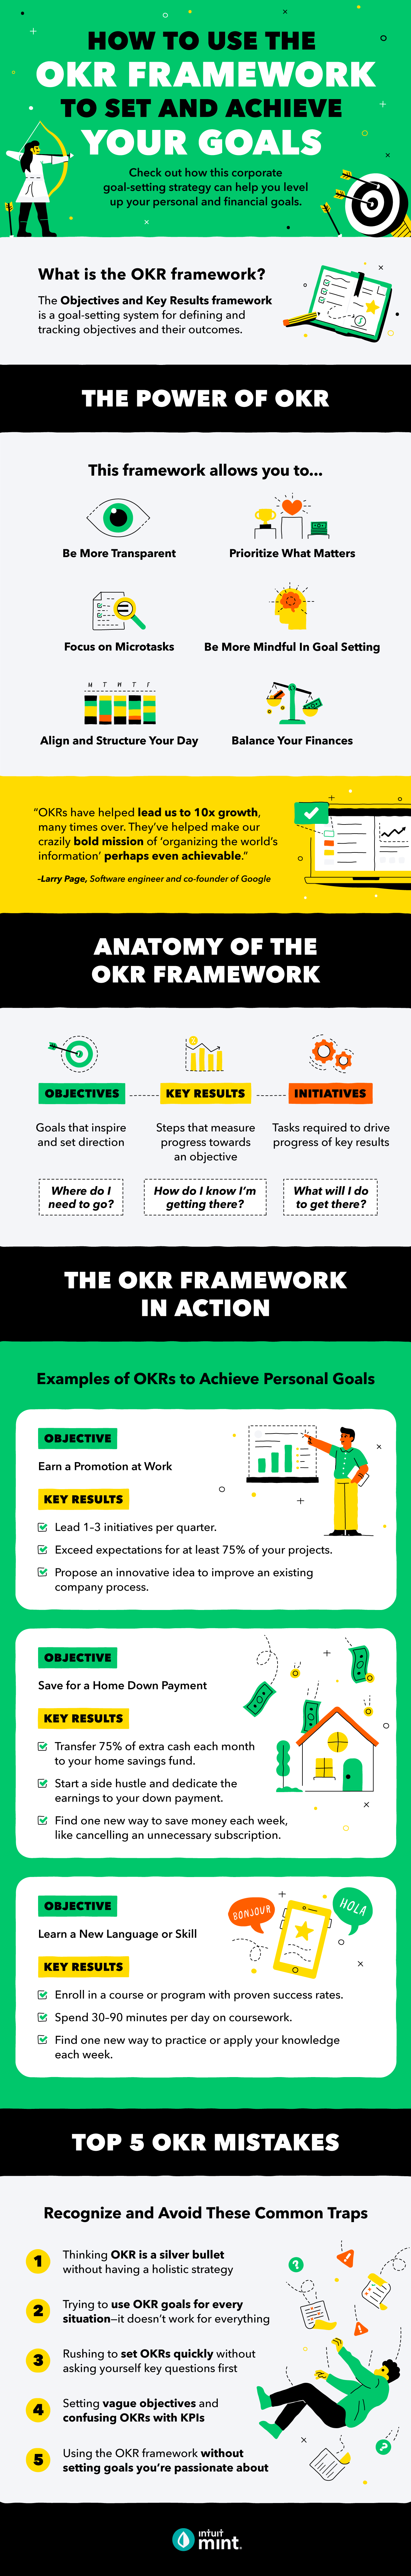 How to Use the OKR Framework To Set and Achieve Your Goals